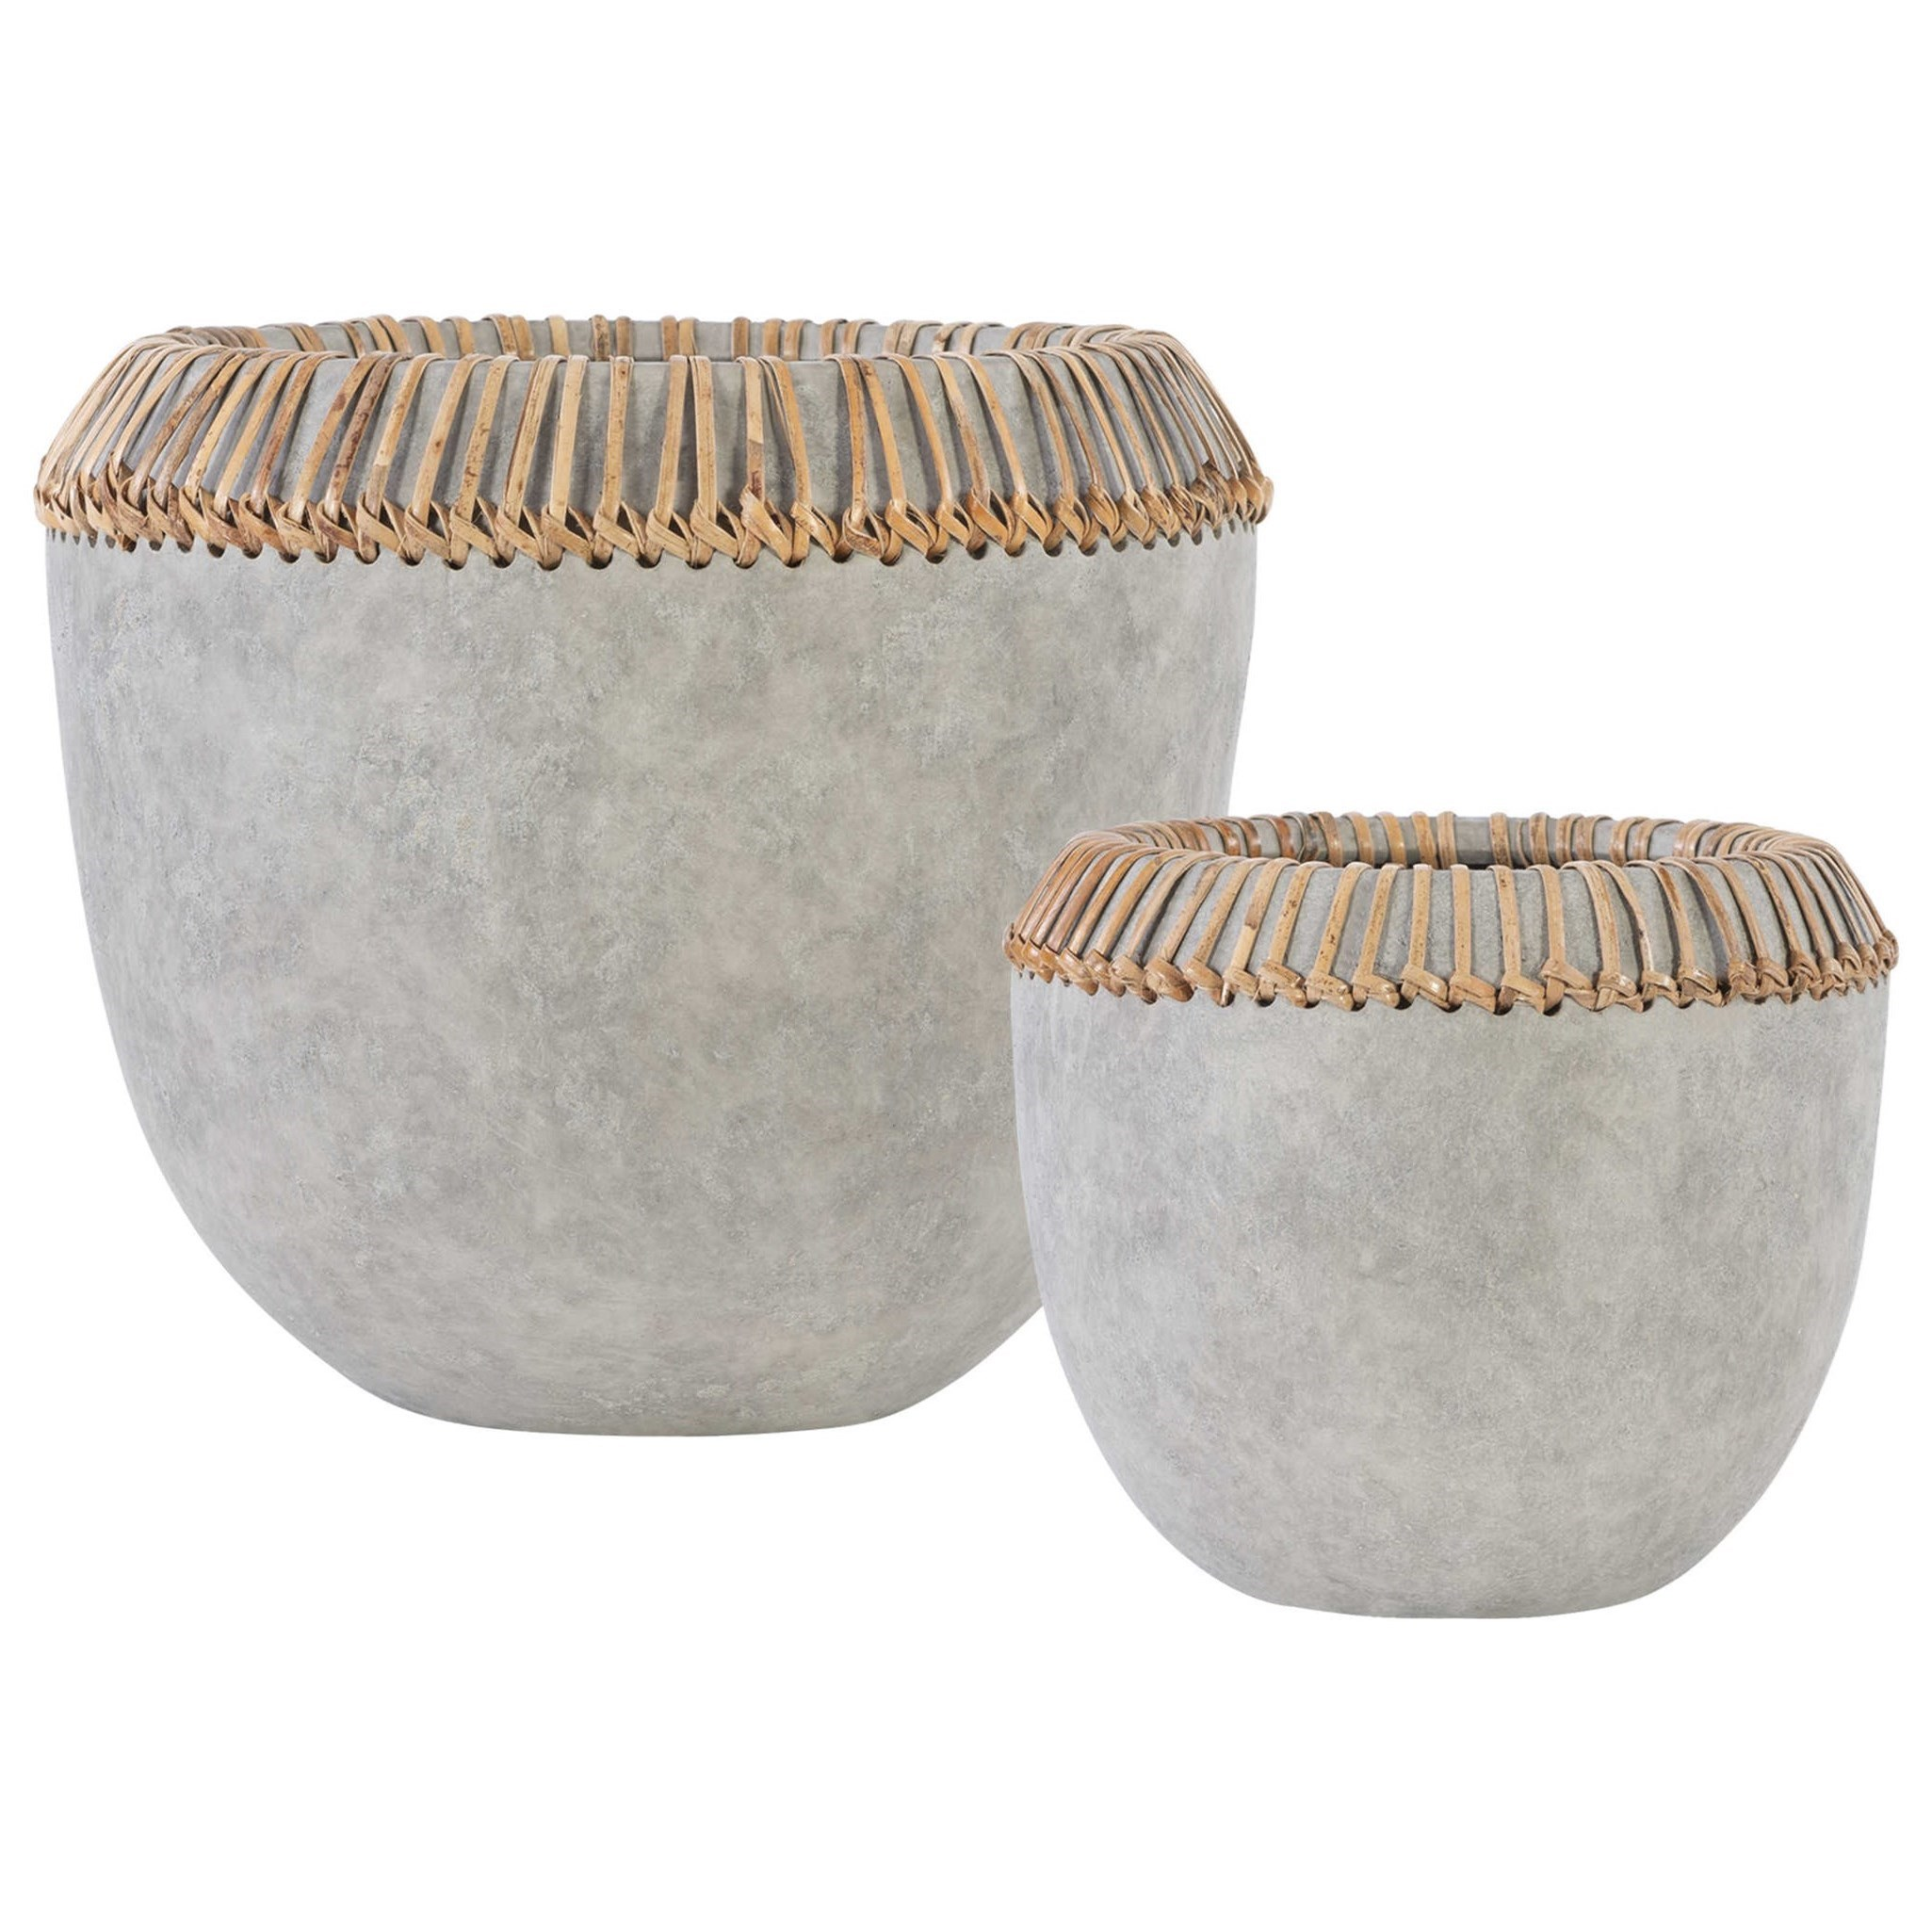 Accessories Aponi Concrete Ray Bowls, S/2 by Uttermost at Del Sol Furniture